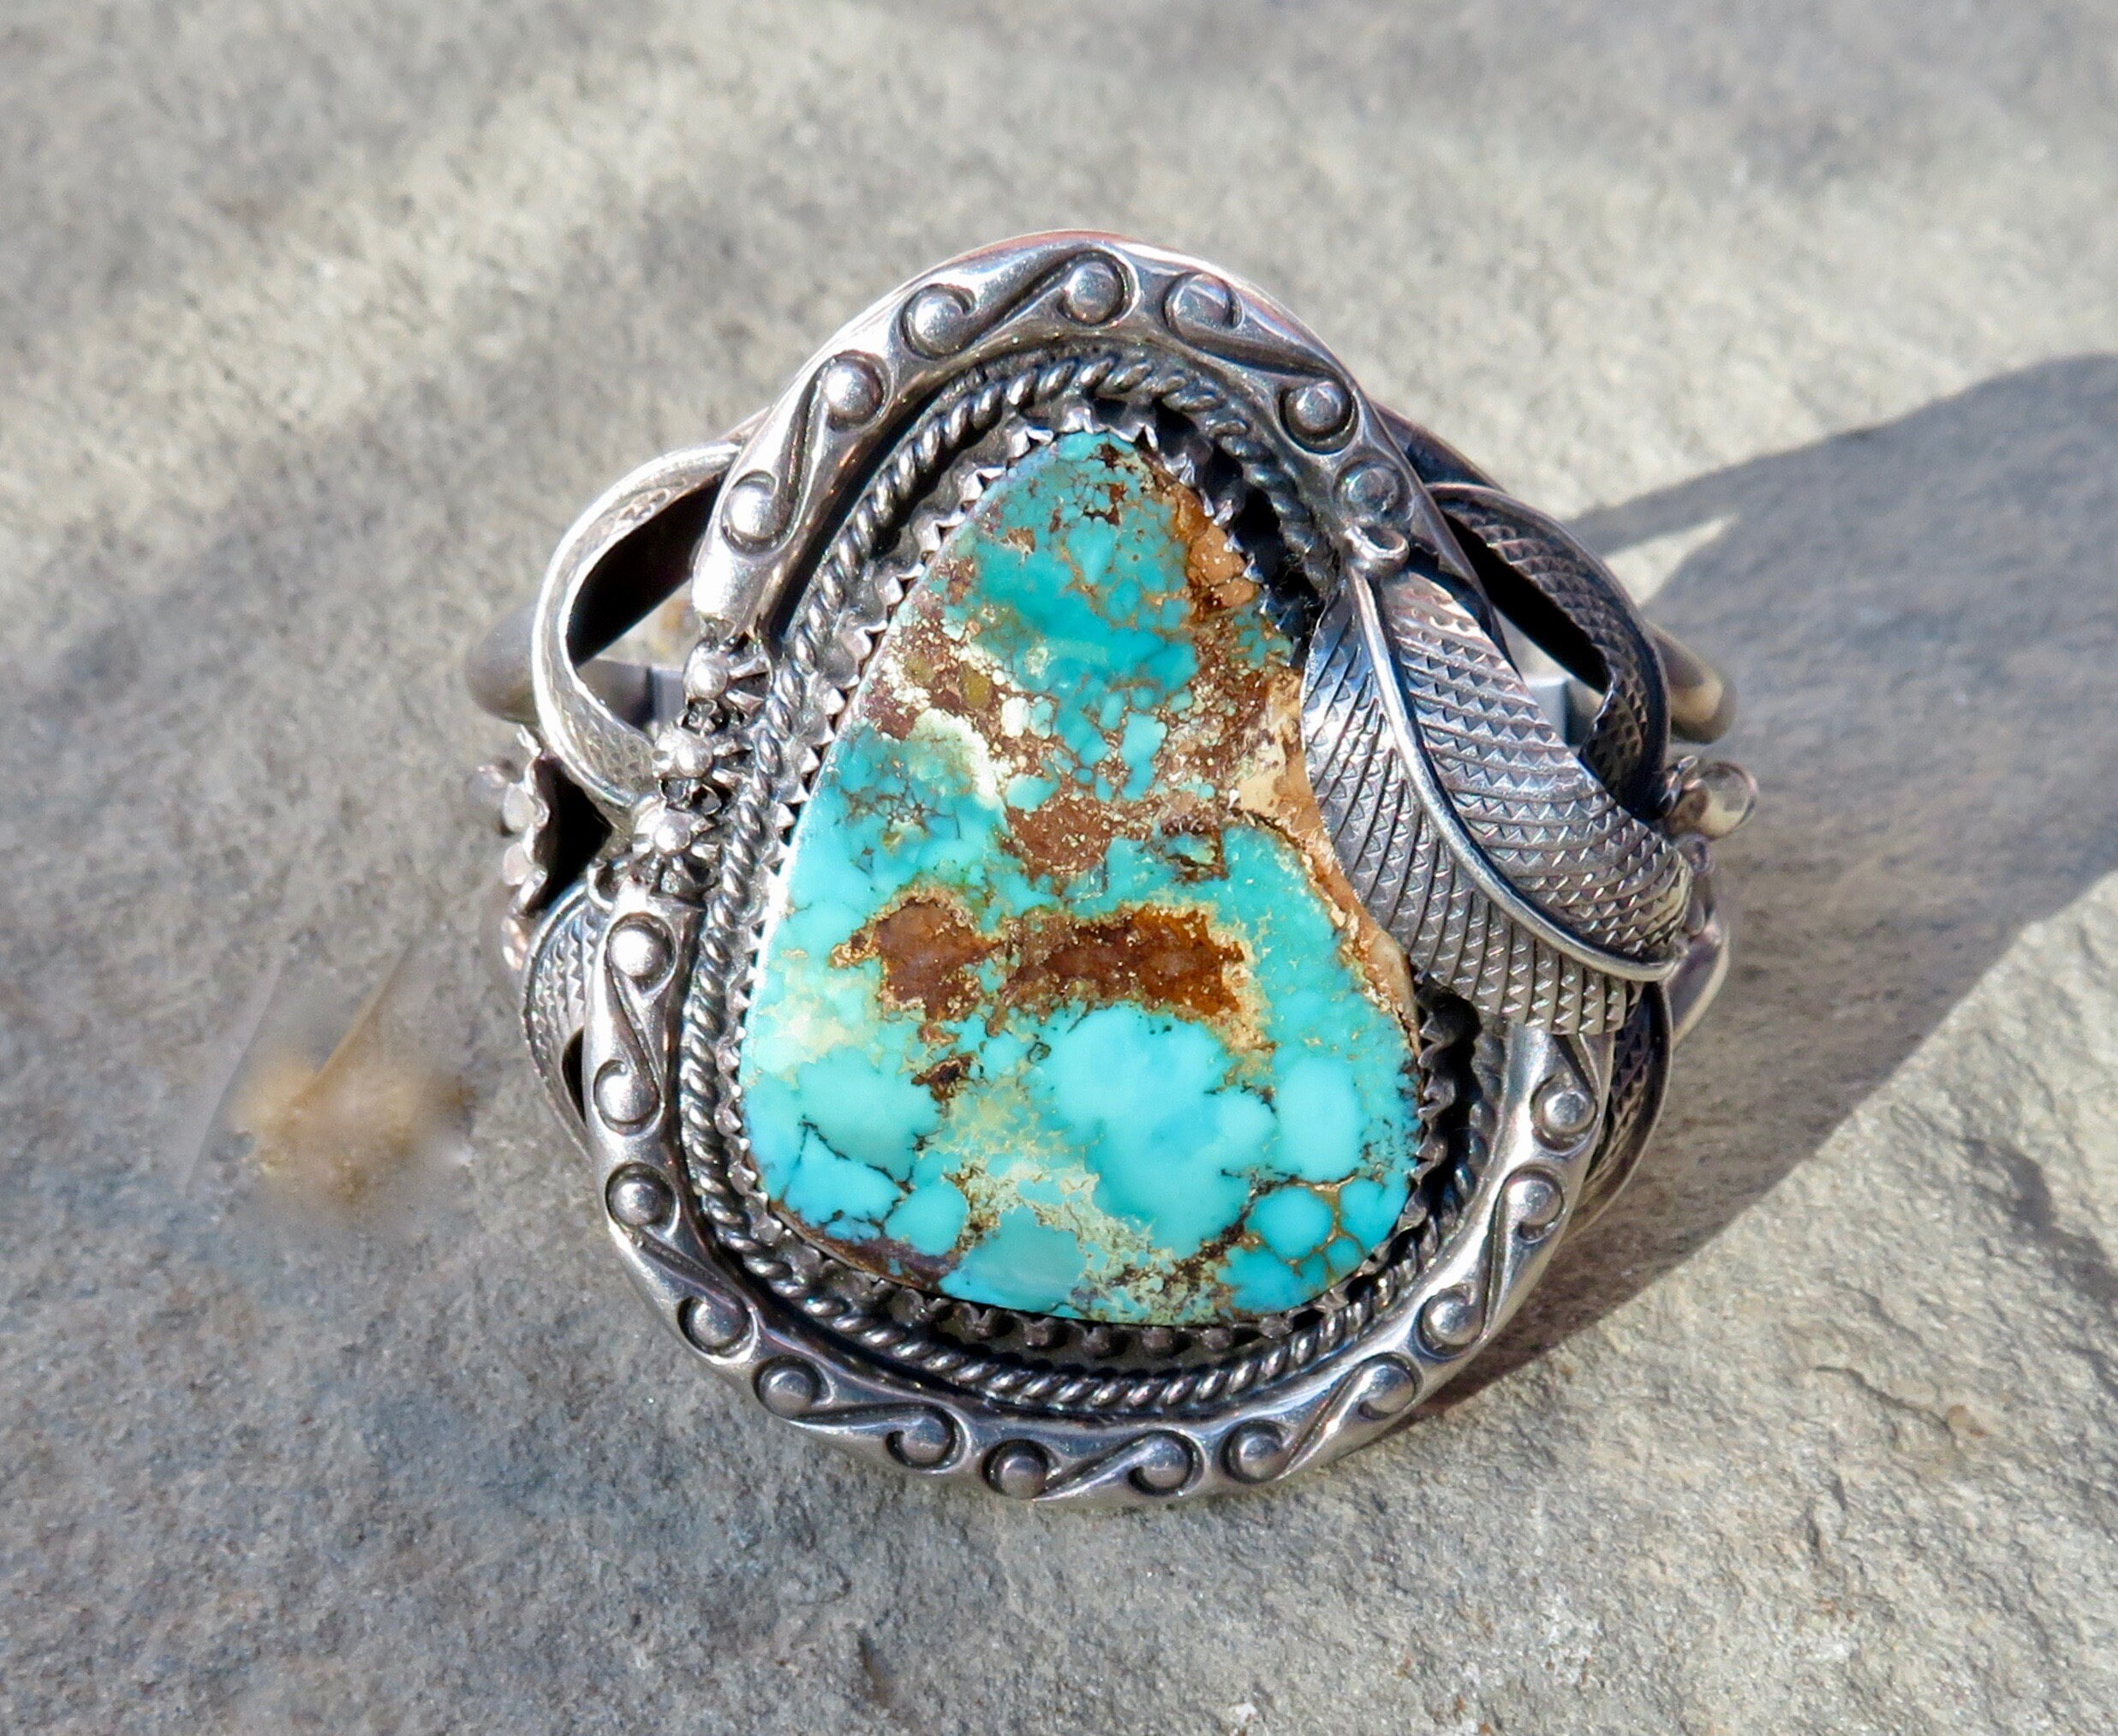 sterling bracelet morgan cast navajo products turquoise village by handcast natural silver hand and henry